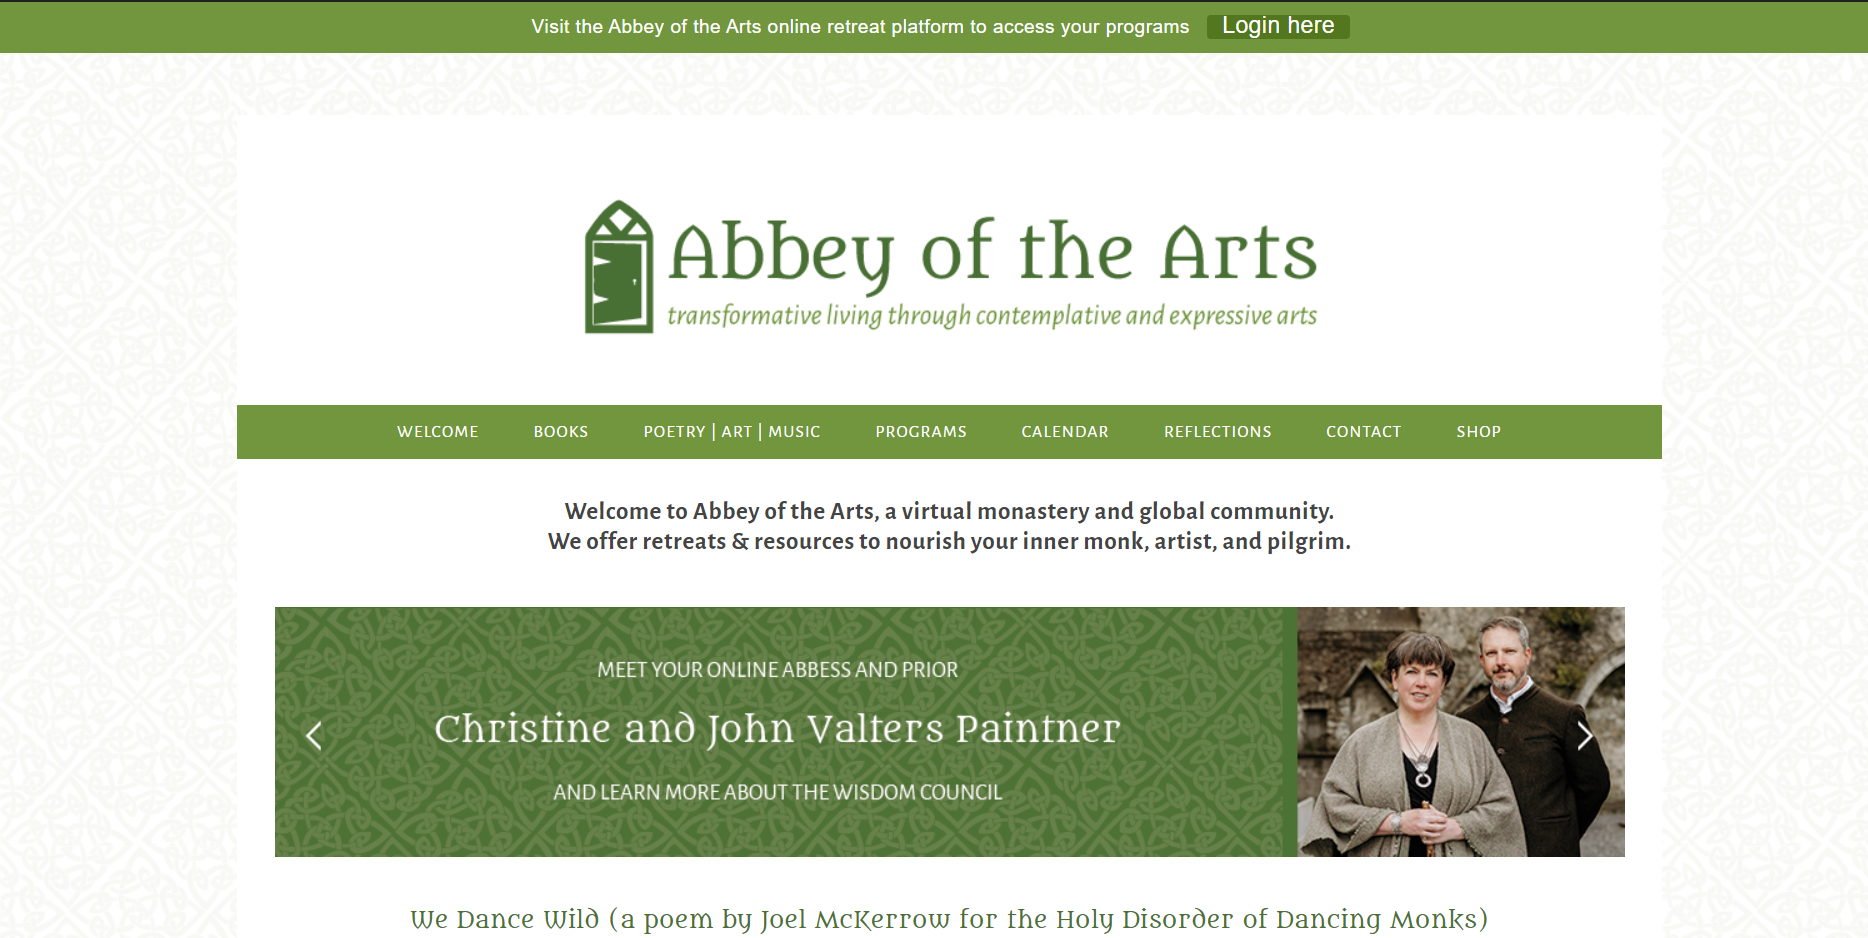 Abbey of the arts: Spiritual blog, website and influencer